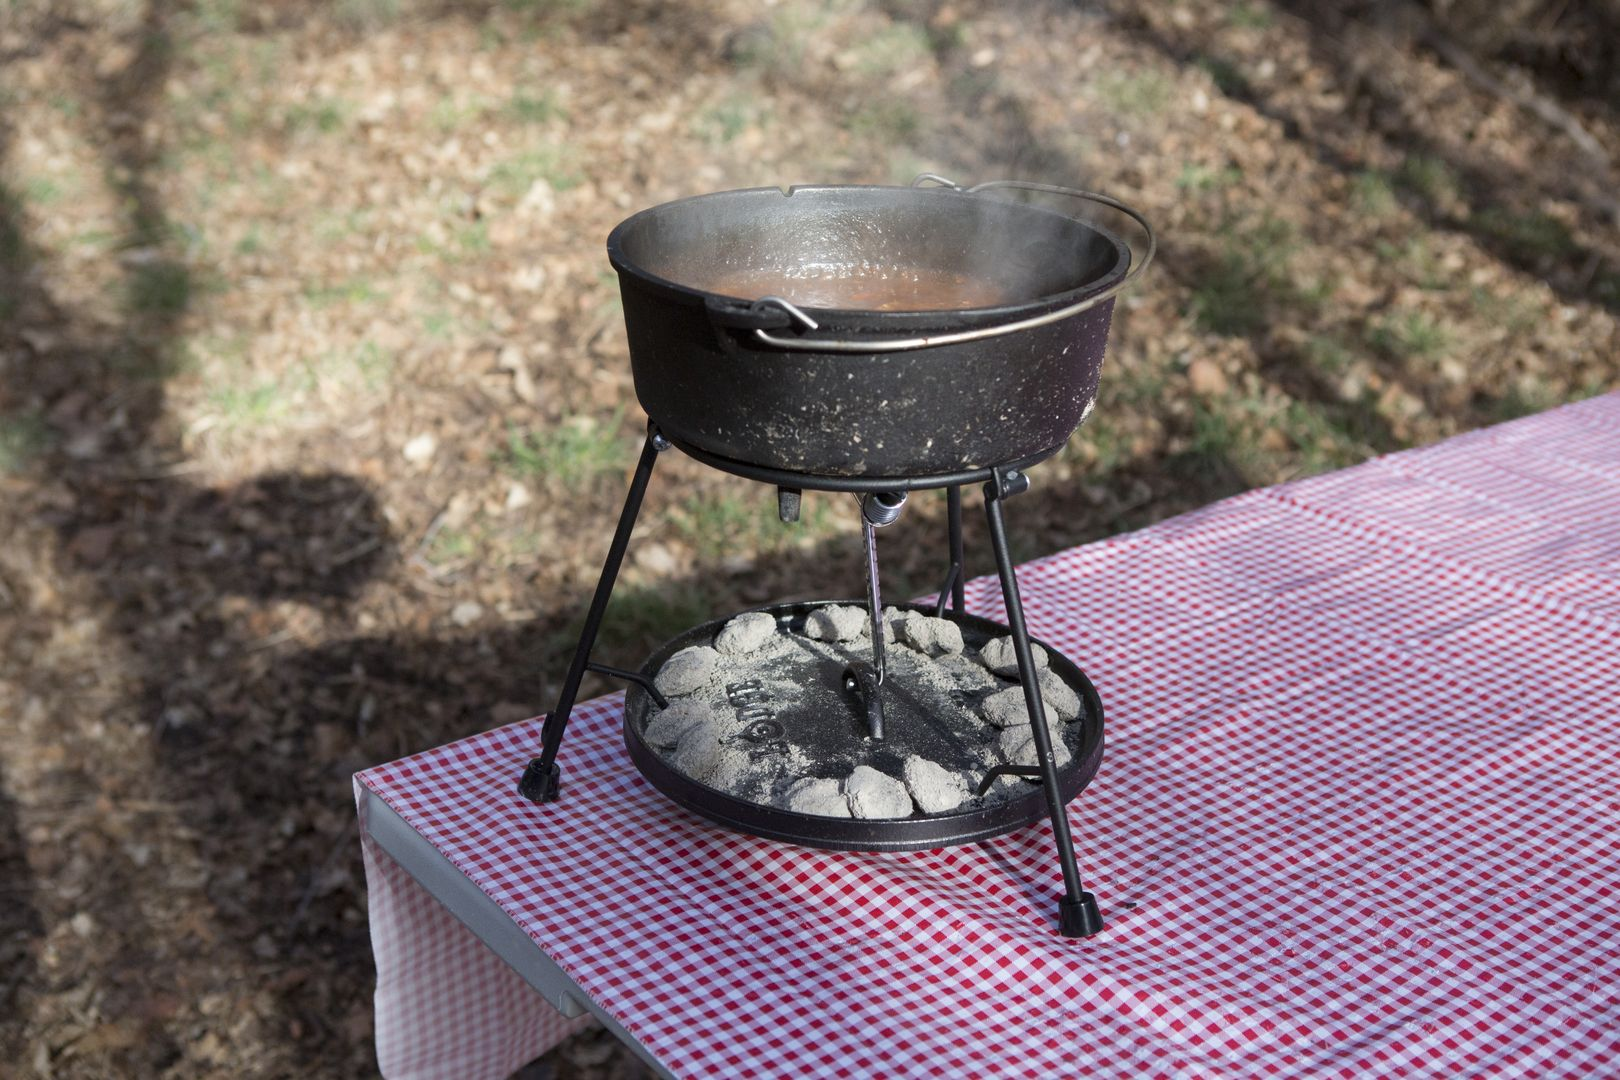 A Dutch Oven Lid Holder That Doubles As A Stand A Grill Accessory And More 39 From This Place Want Oven Accessories Grilling Grill Accessories